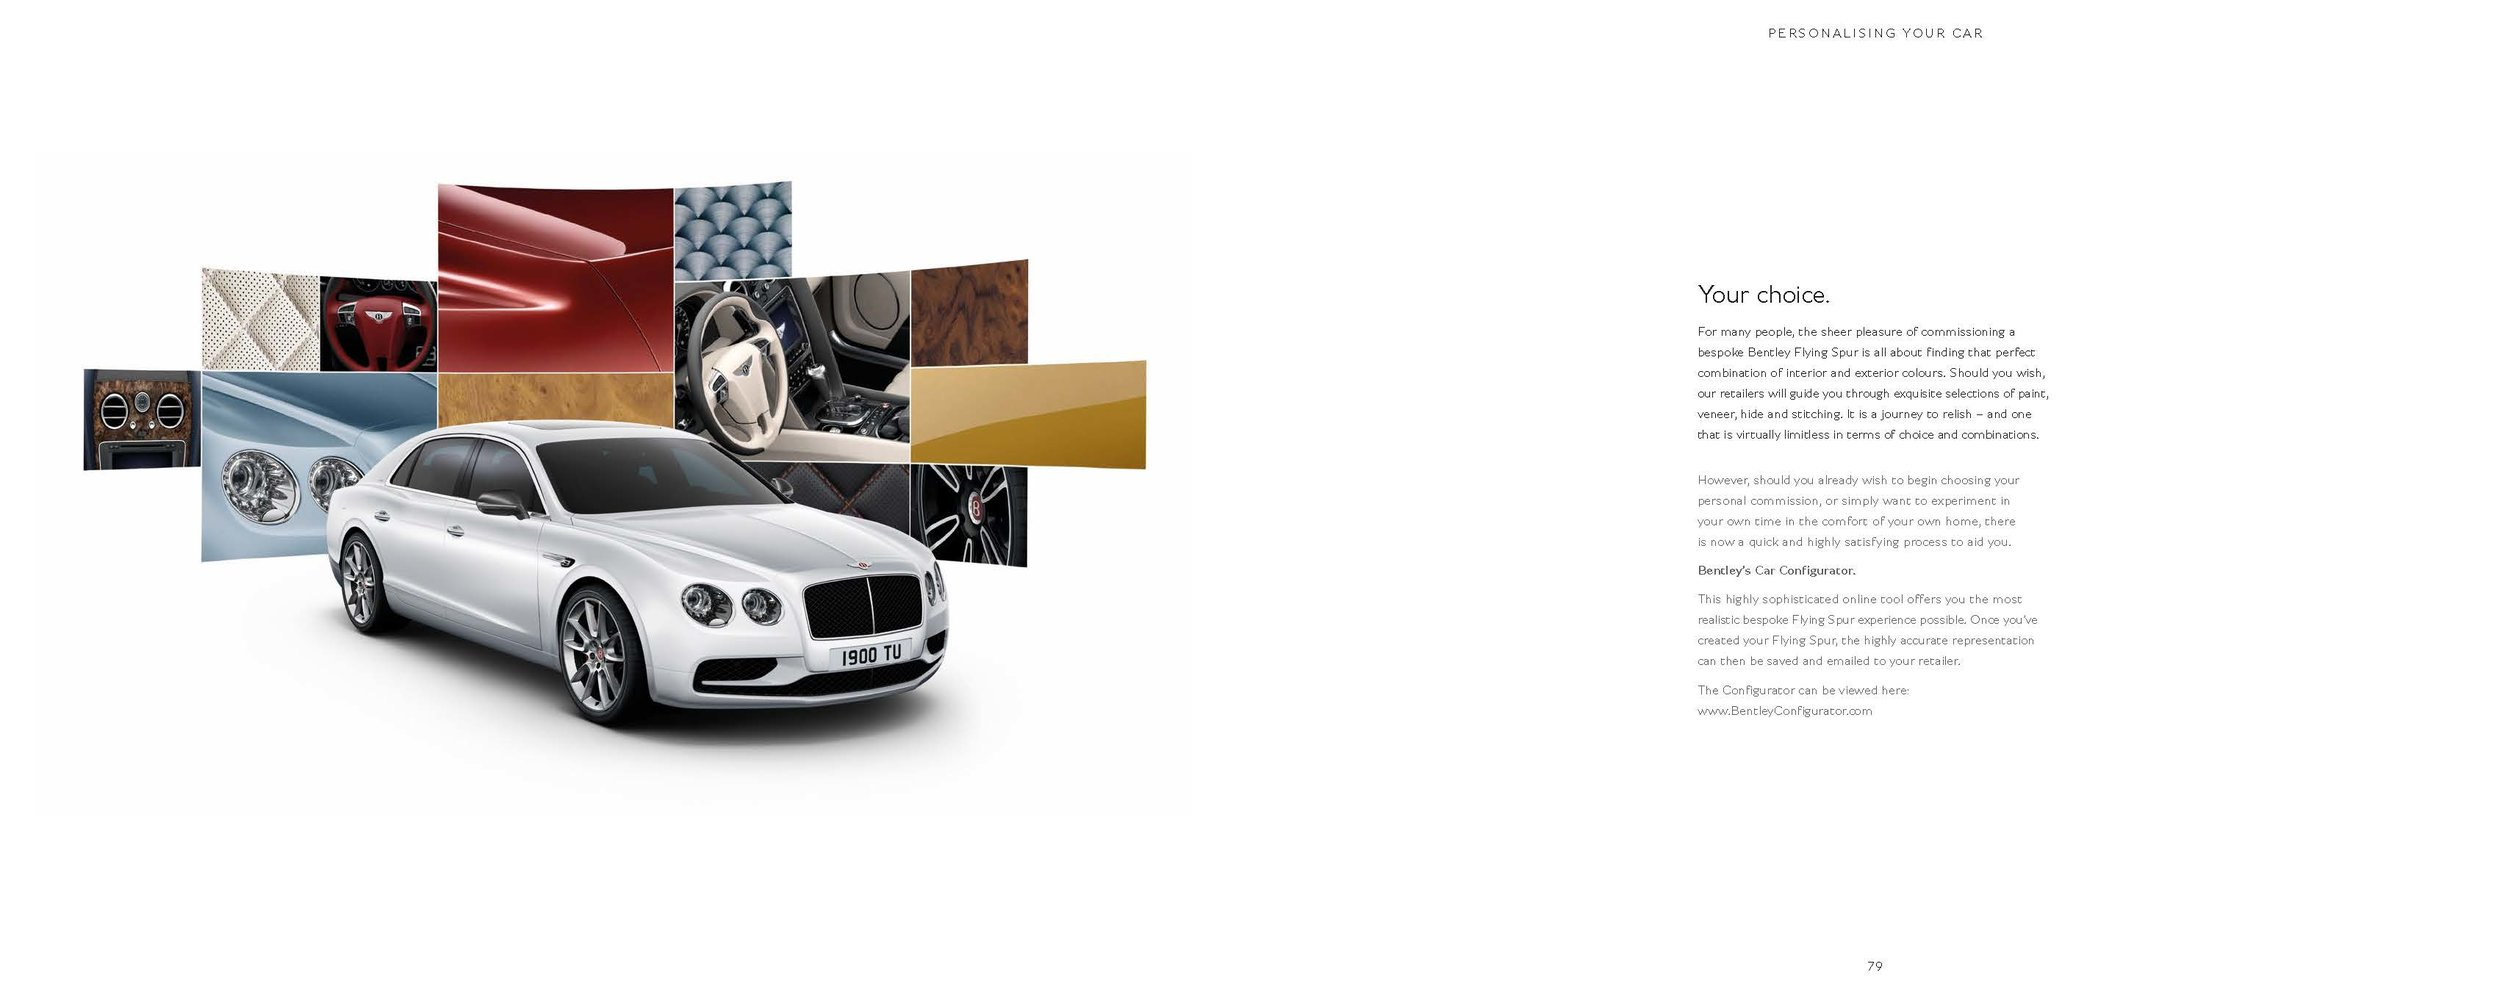 BENFS-16-012_Flying Spur Customer Book Cover & Contents CLEAN_v15_Page_40.jpg